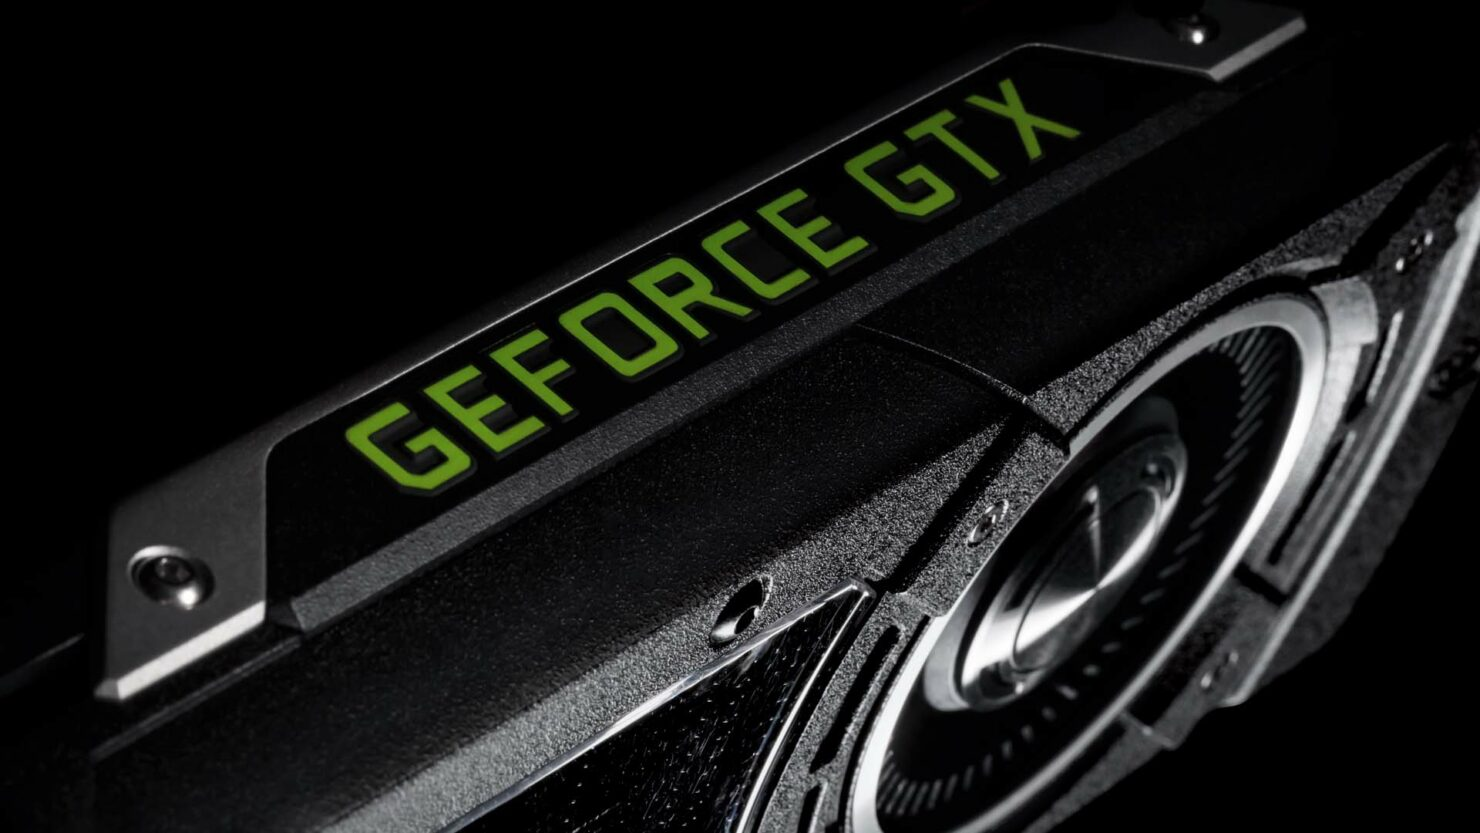 NVIDIA Rumored To Prep Its GTX 1050 Ti And GTX 1060 for Upcoming Gaming Notebooks - No 'M' Branding Suggests Desktop Class GPUs To Be Present